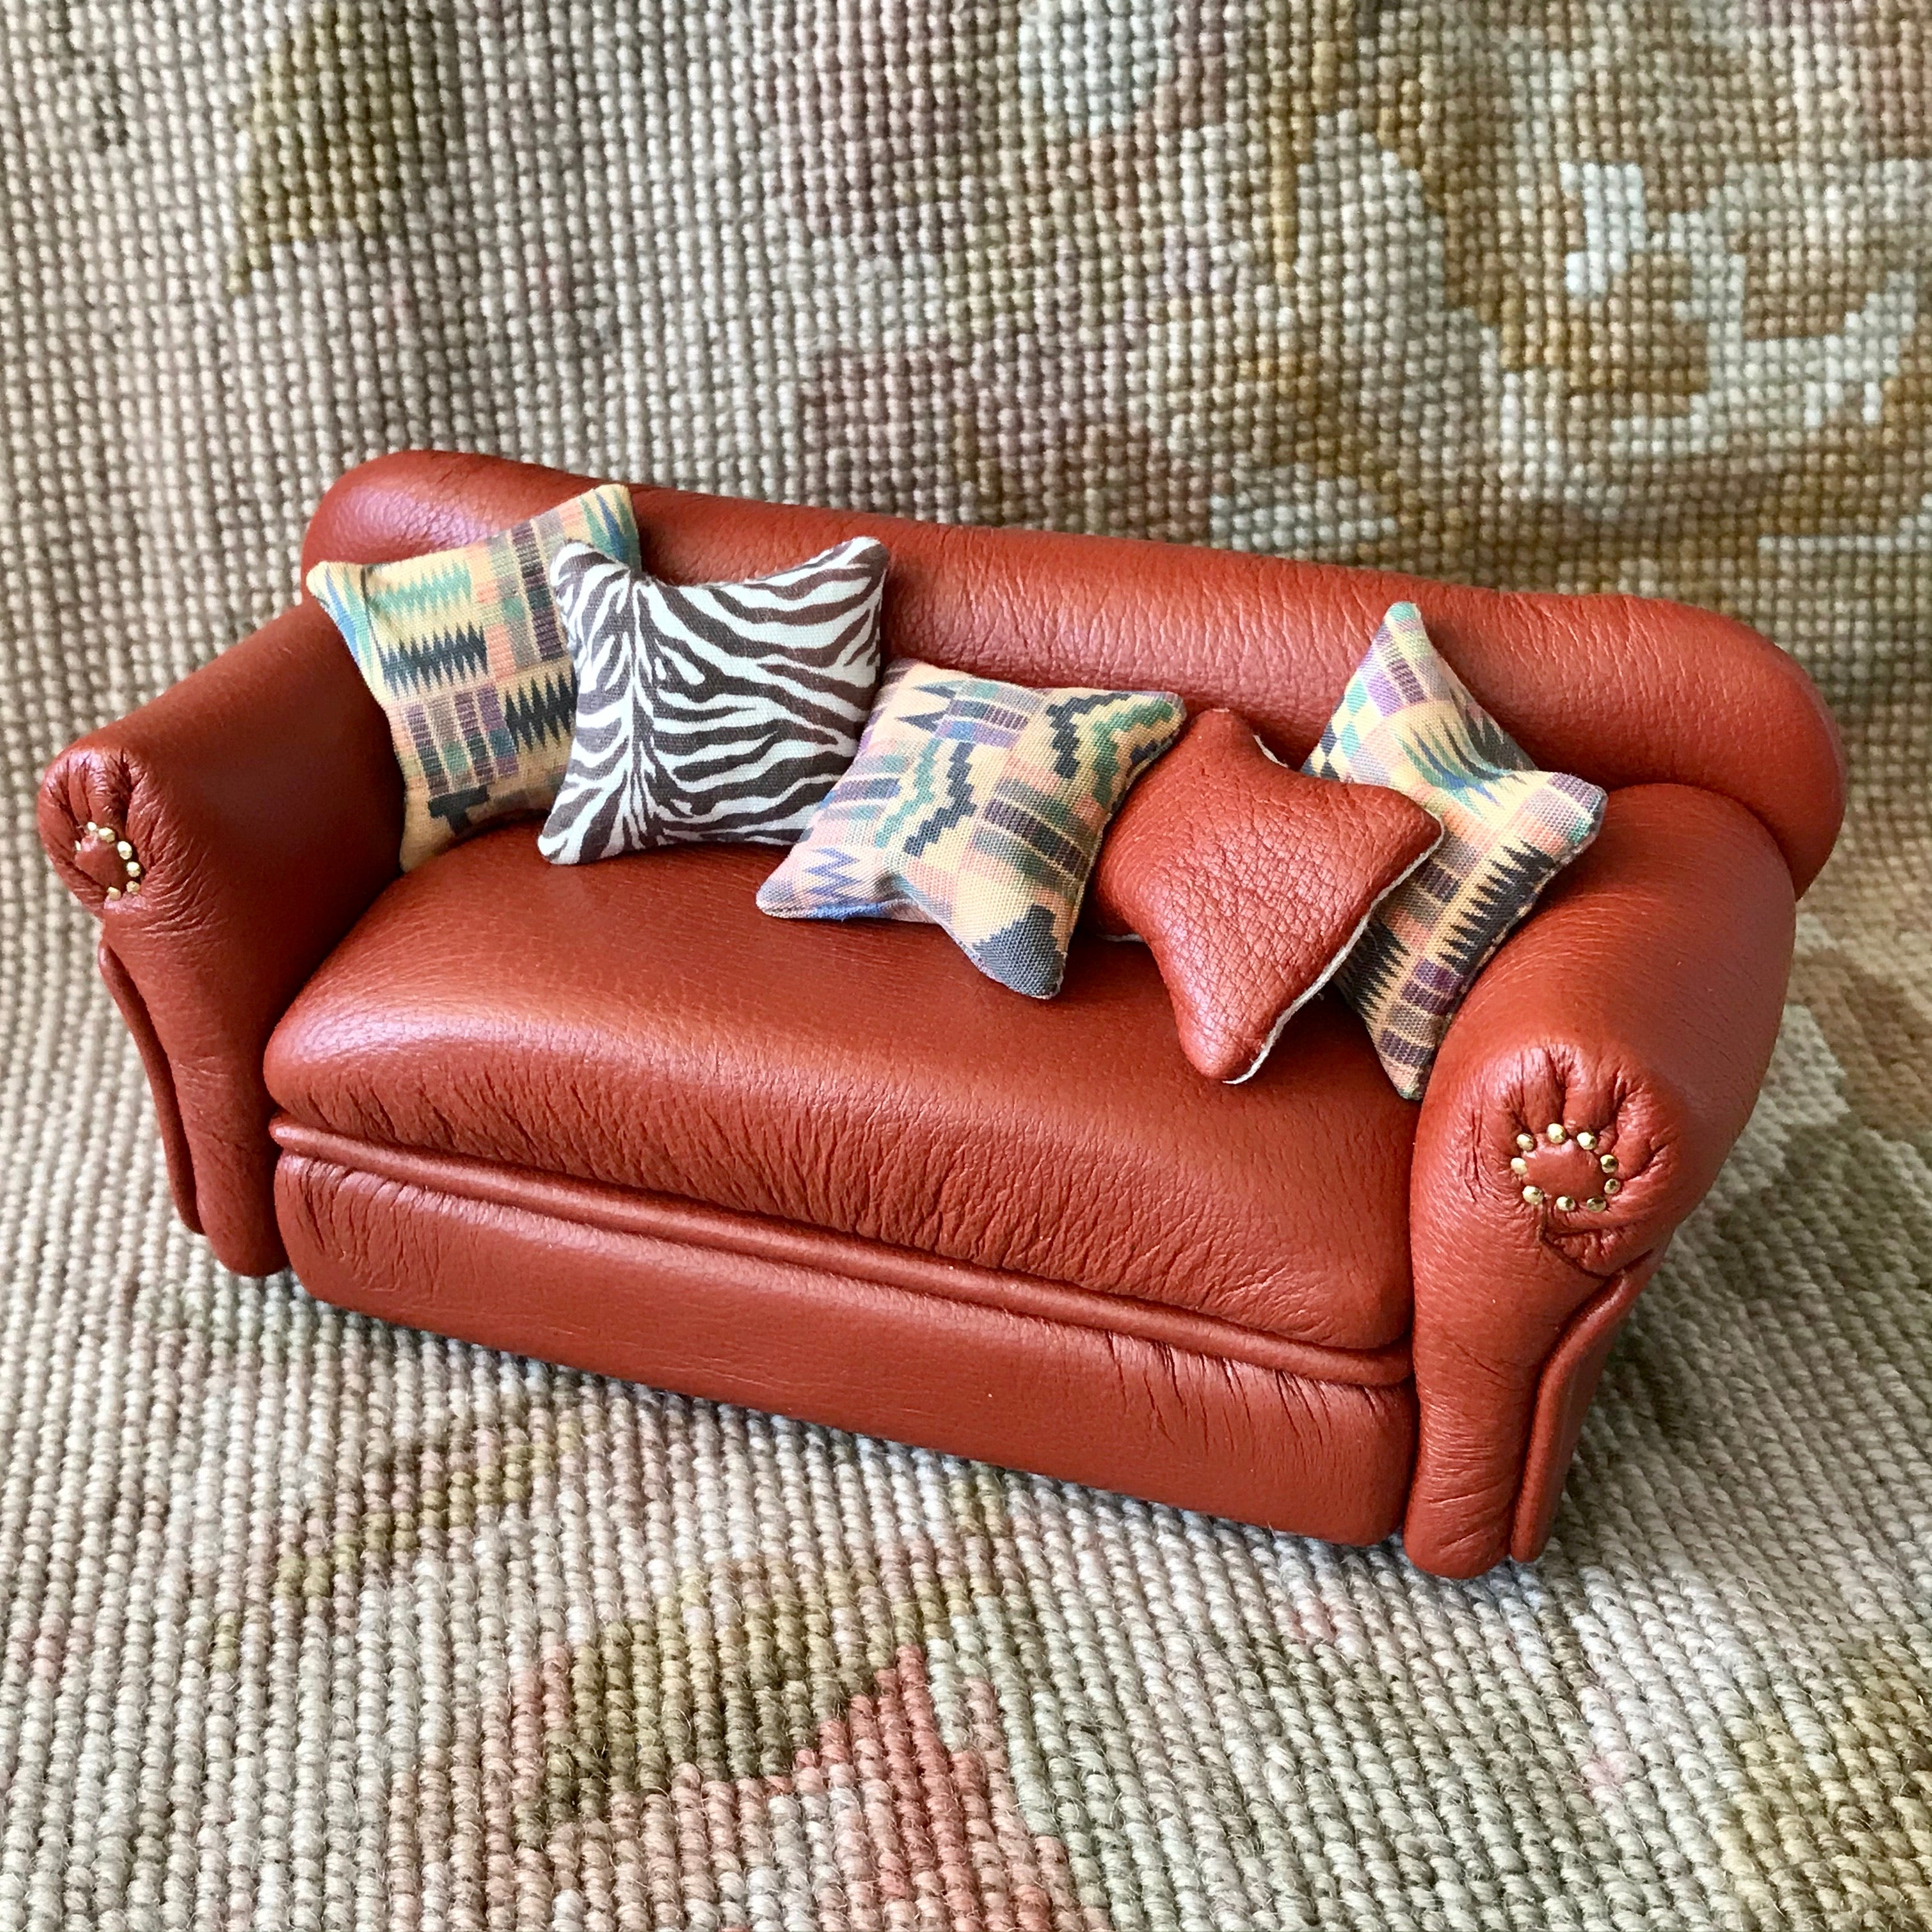 Sofa Couch Lounge Divan Settee Cinnamon Brown Leather with Pillows